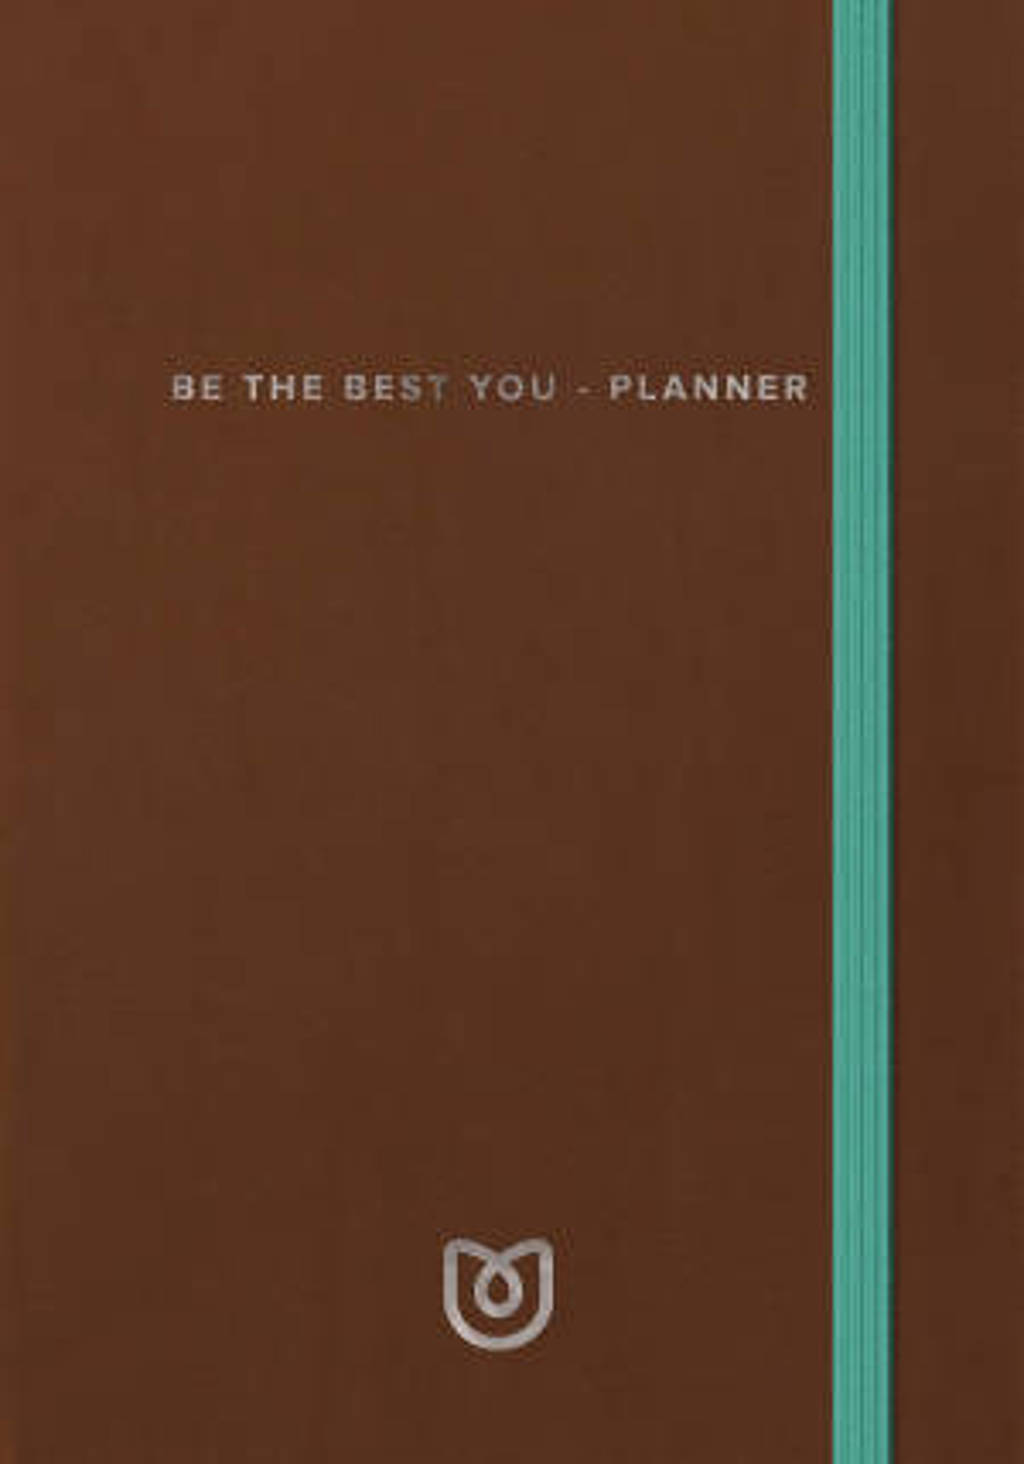 Be the best you planner - Mom in Balance